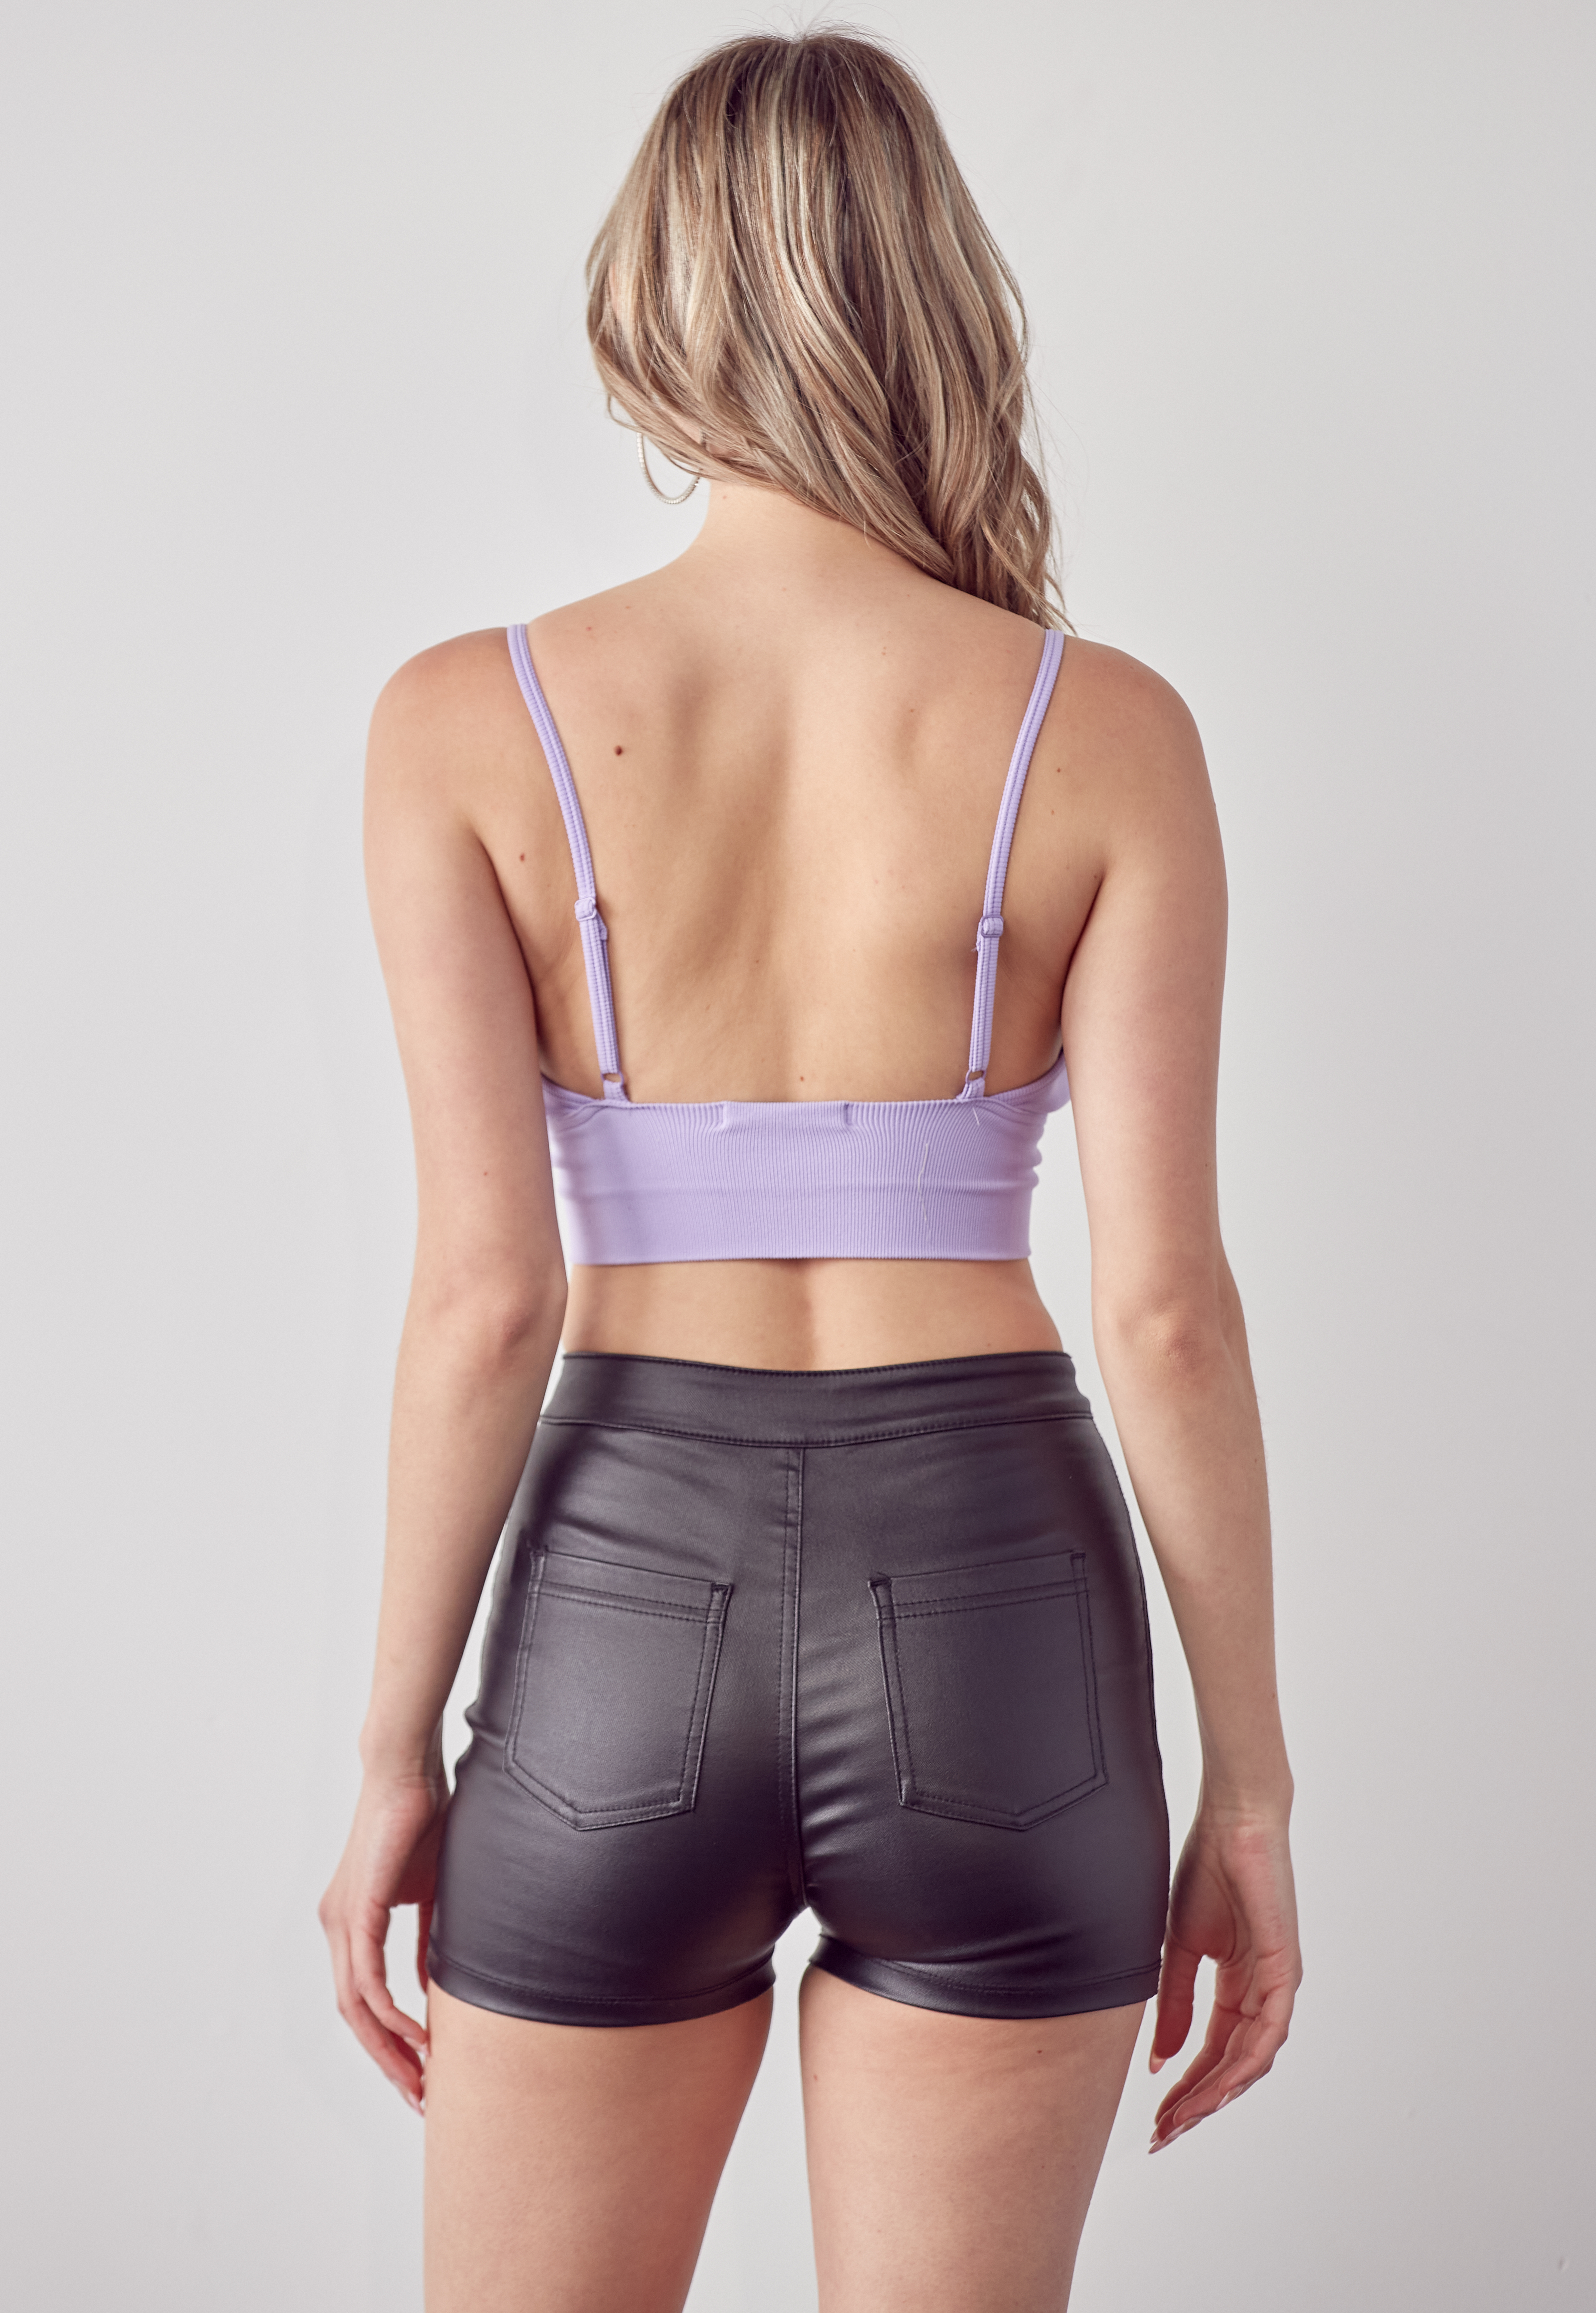 Cami Stretch Crop Top